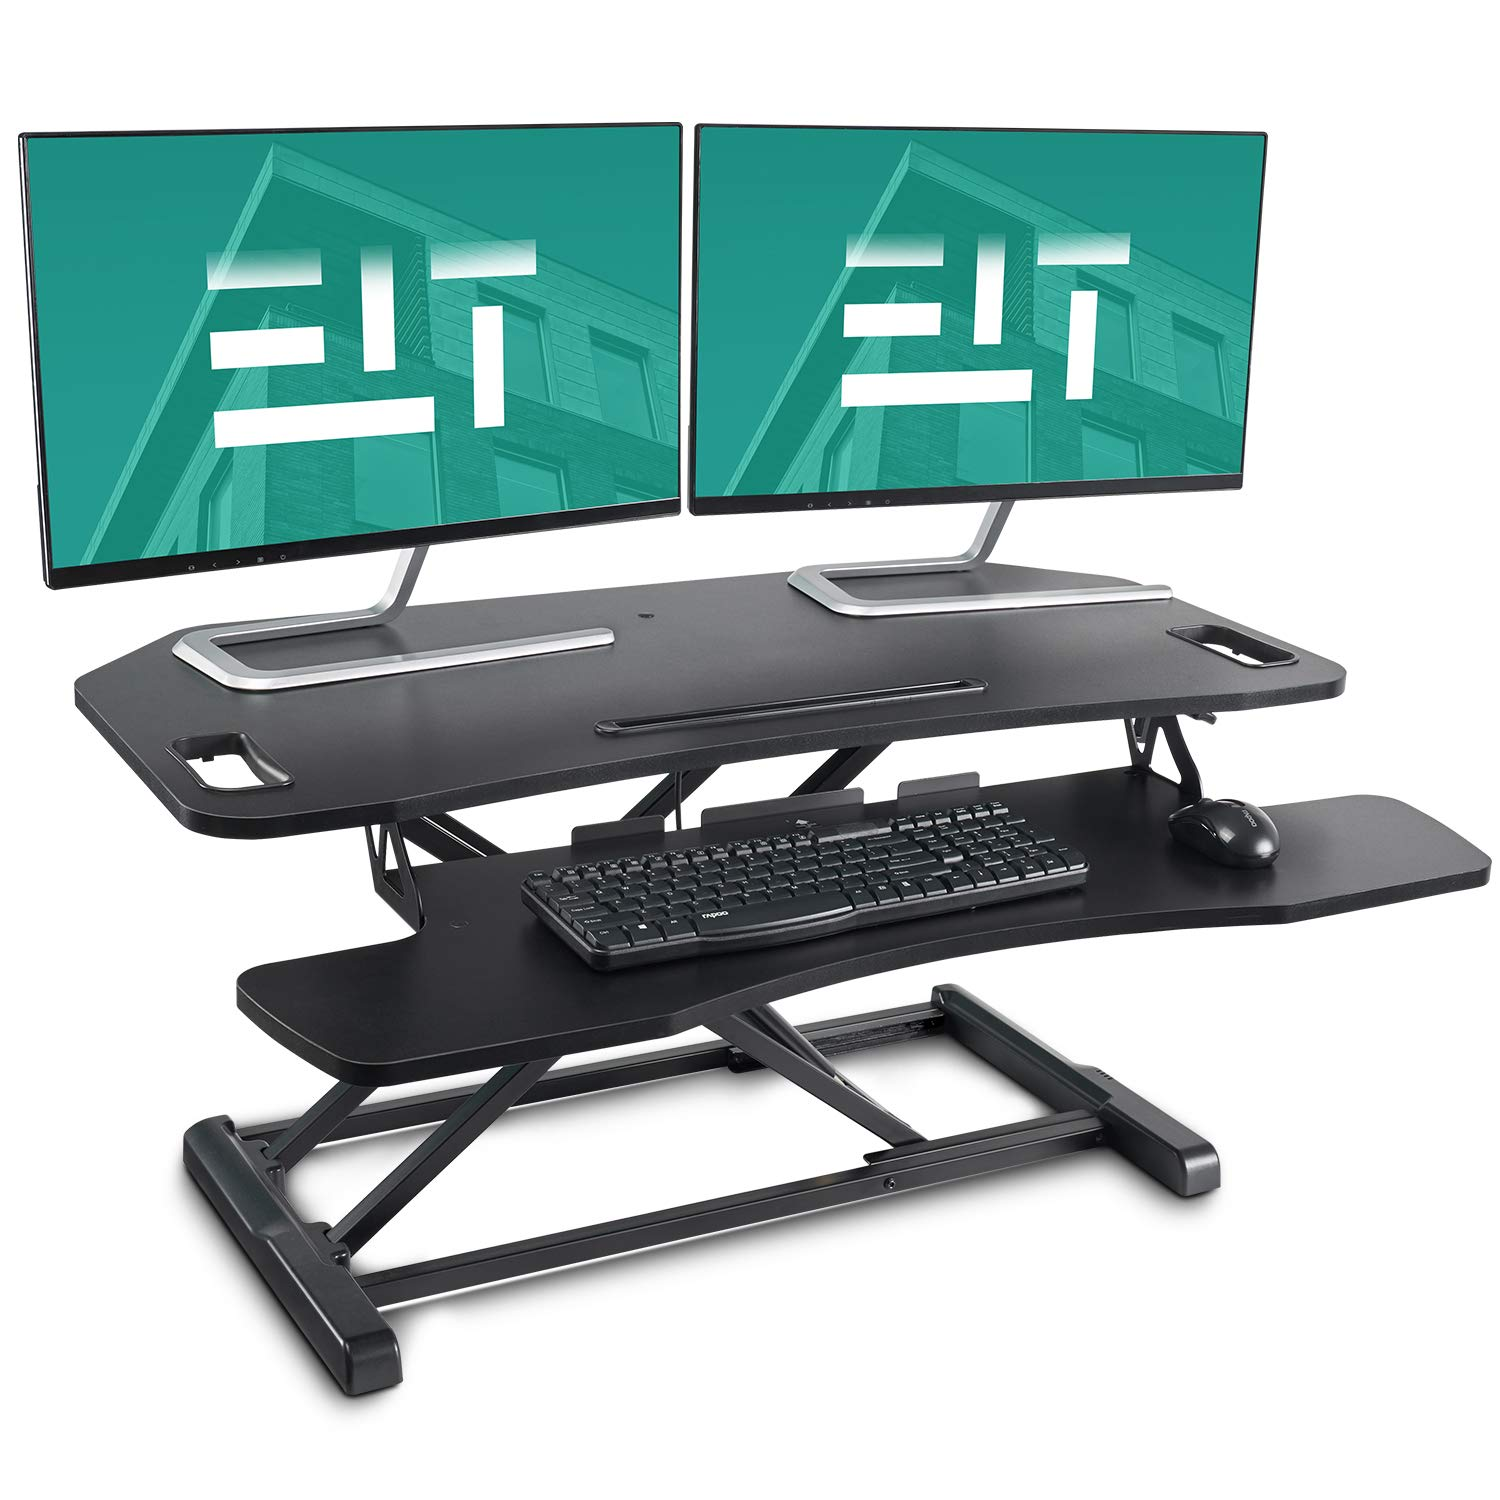 EleTab Height Adjustable Standing Desk Sit to Stand Gas Spring Riser Converter 37 inches Tabletop Workstation fits Dual Monitor by EleTab